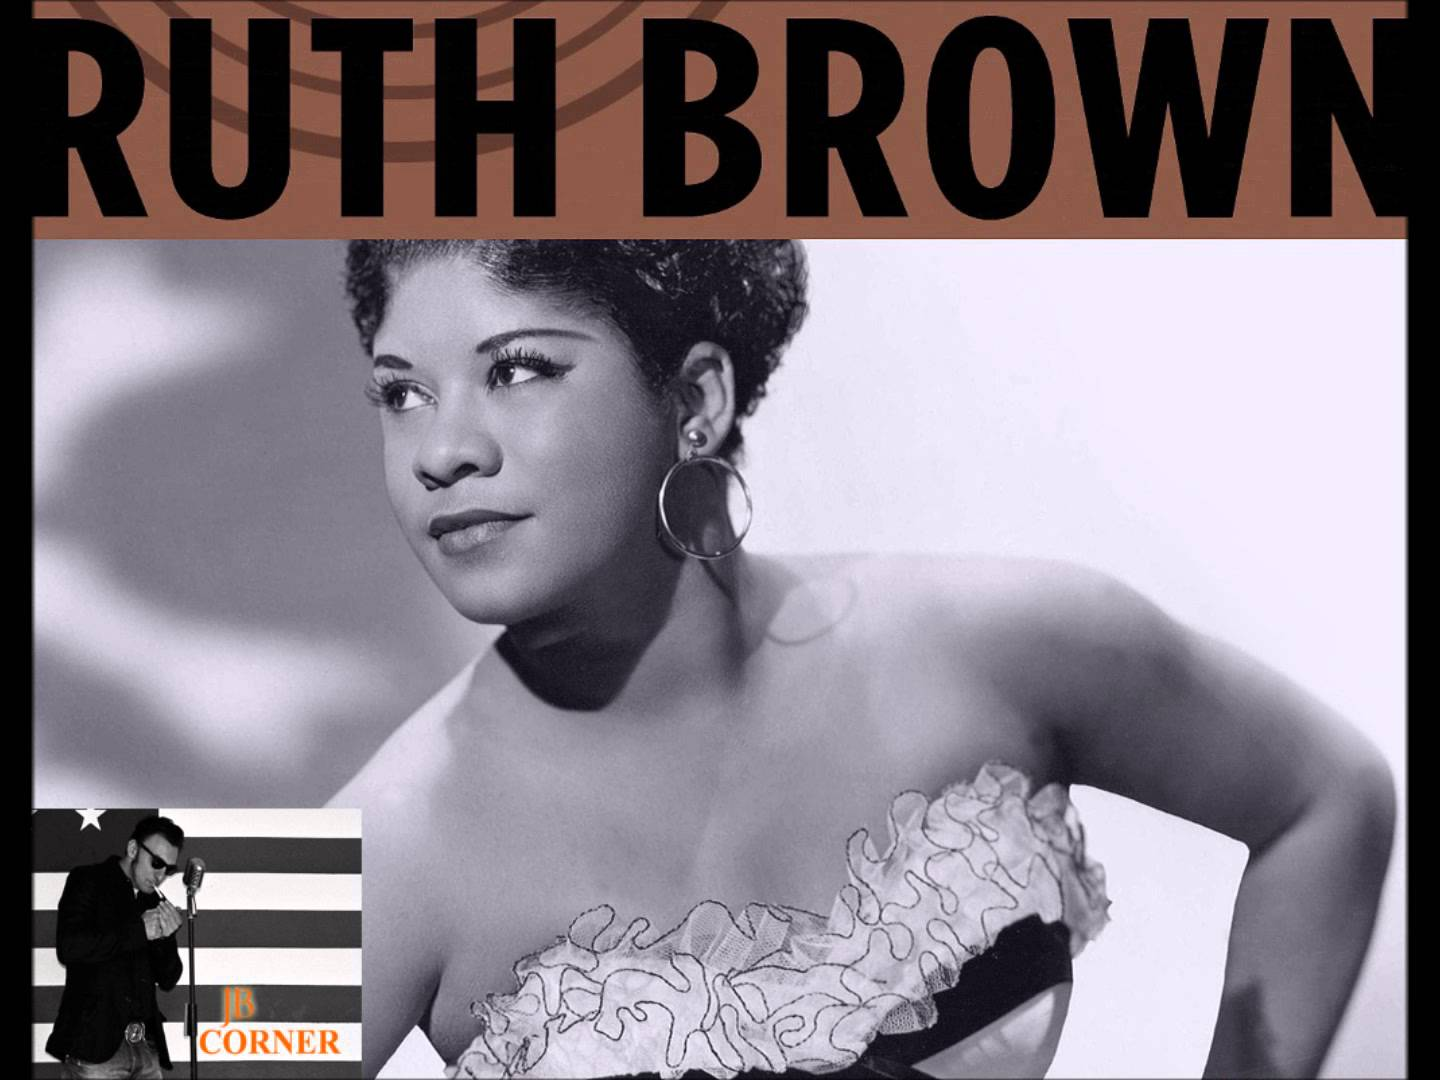 Ruth Brown, 5,10,15 hours